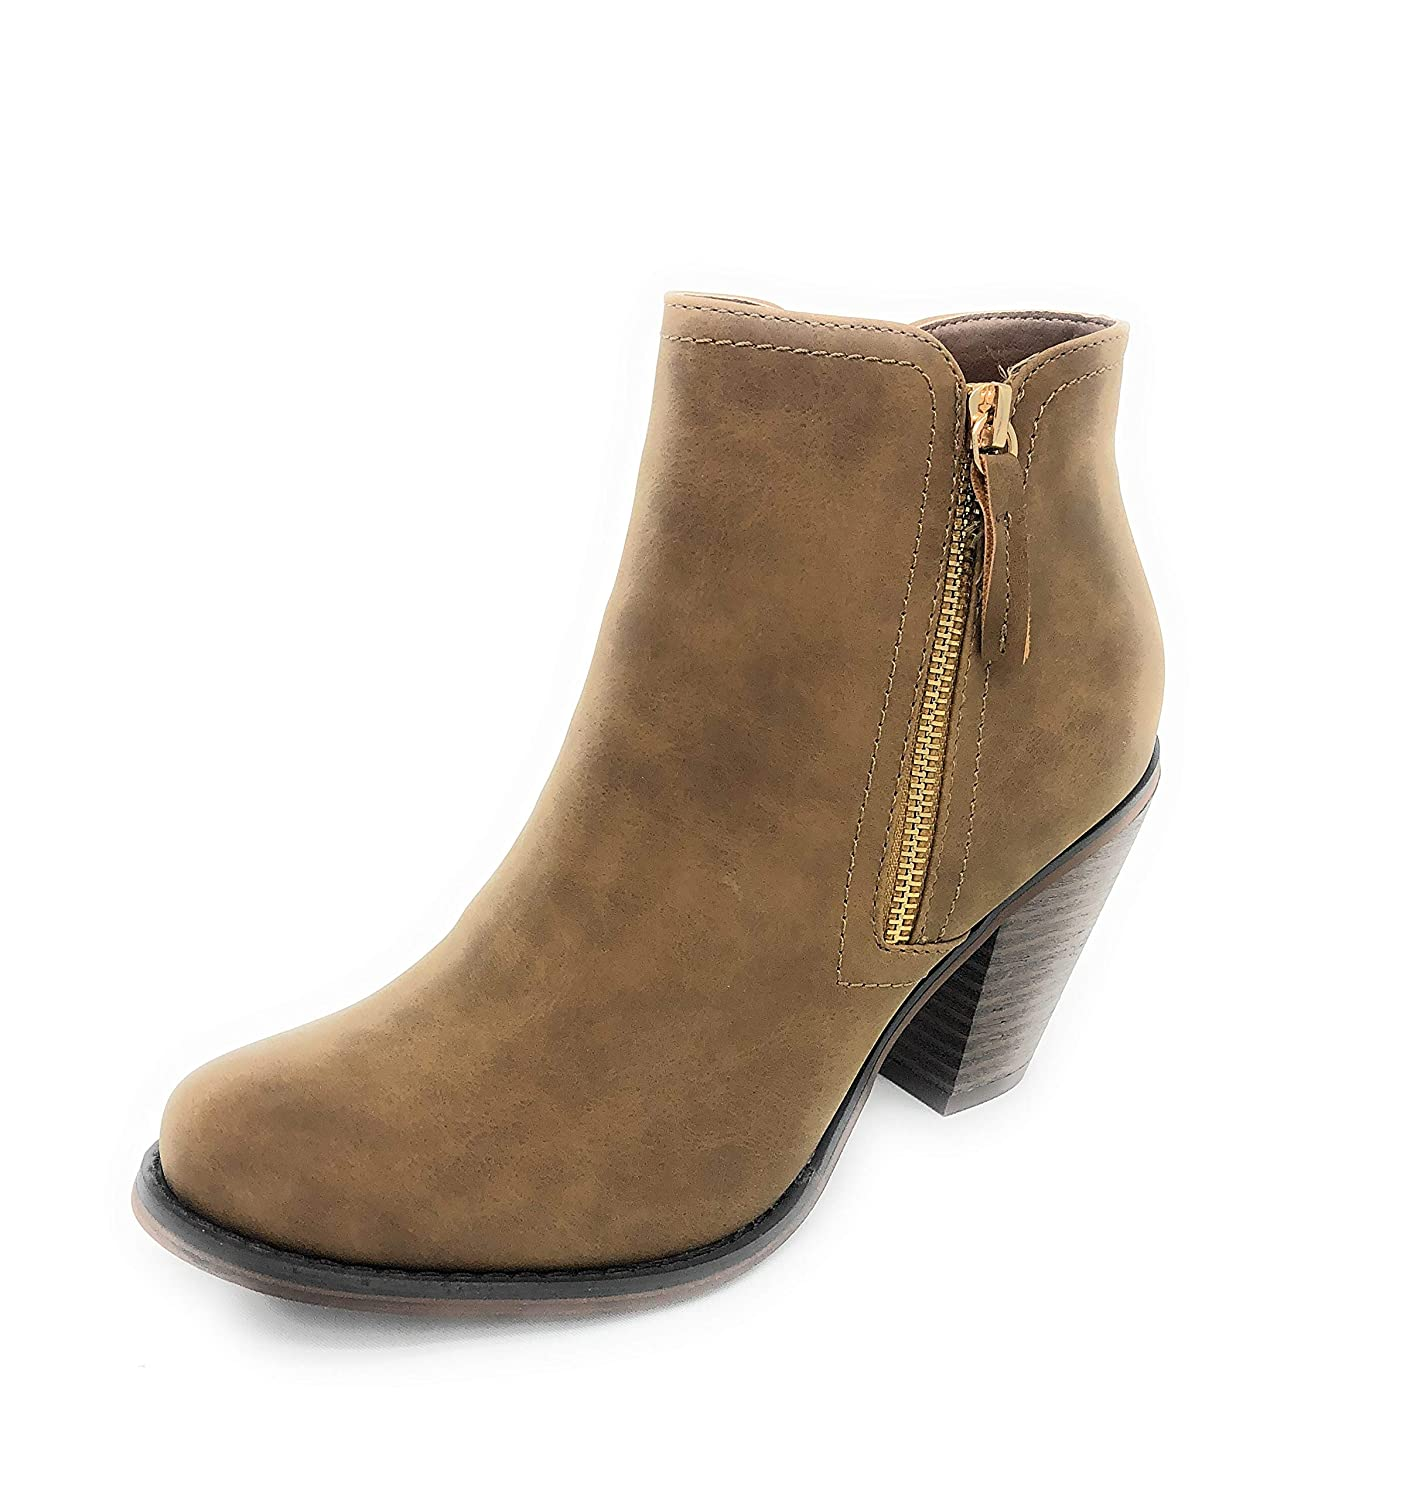 Tan-irene-08 SOLE COLLECTION Faux Leather Suede Strap Side Zipper Chunky Block Heels Dress Ankle Boots